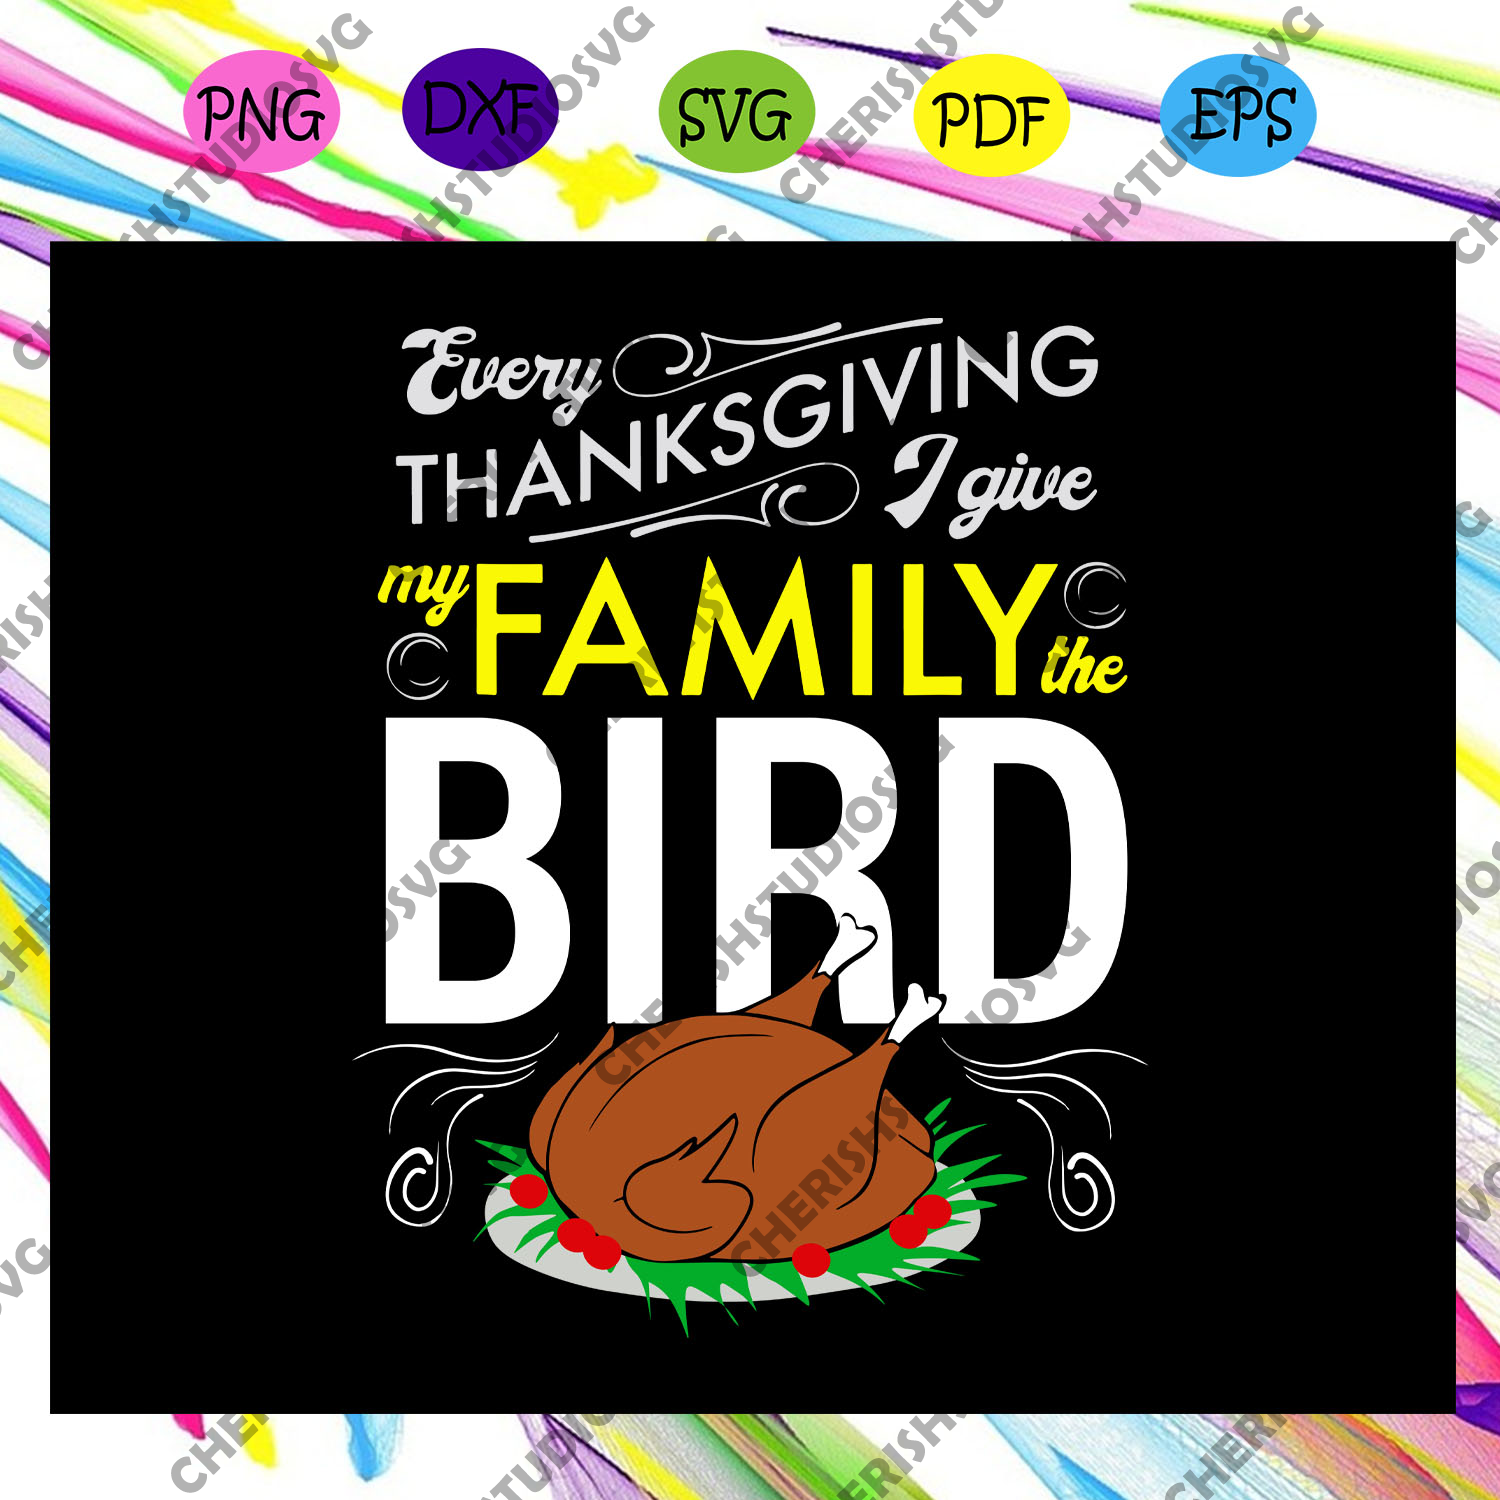 Every thanksgiving I give my family the bird, turkey, funny turkey, turkey shirt, funny family, november, happy thanksgiving,trending svg For Silhouette, Files For Cricut, SVG, DXF, EPS, PNG Instant Download